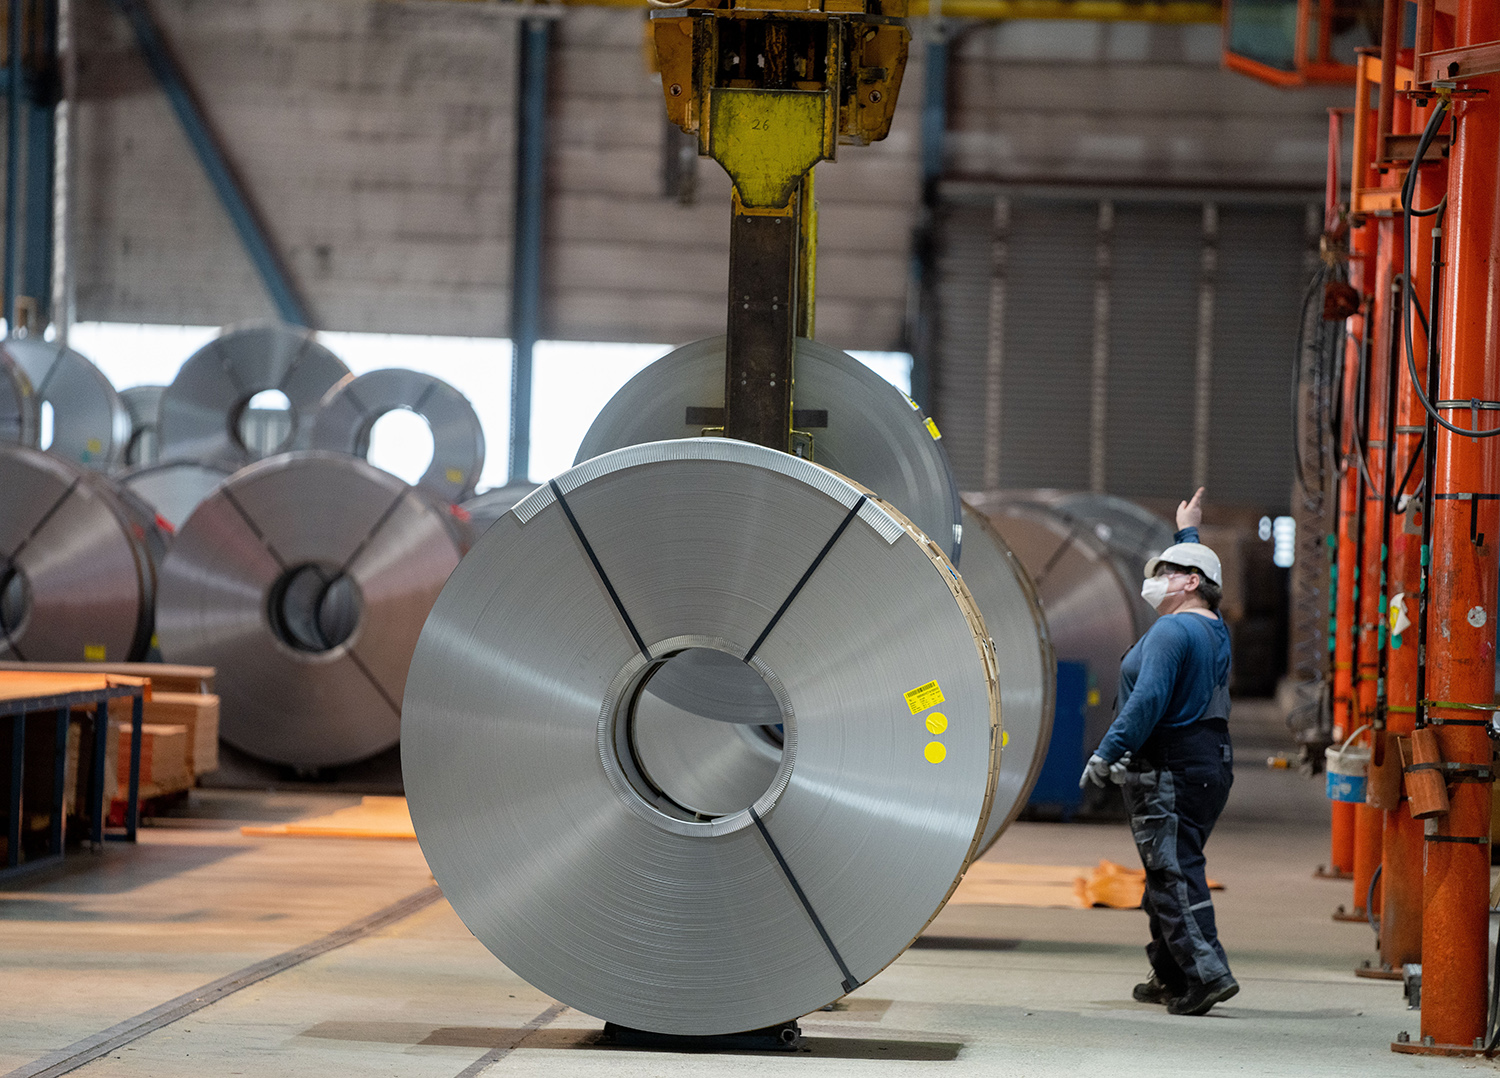 Galvanized and coiled metal strips are transported and stored at the ArcelorMittal steel group, which processes green steel in Brandenburg, Germany, on June 18.